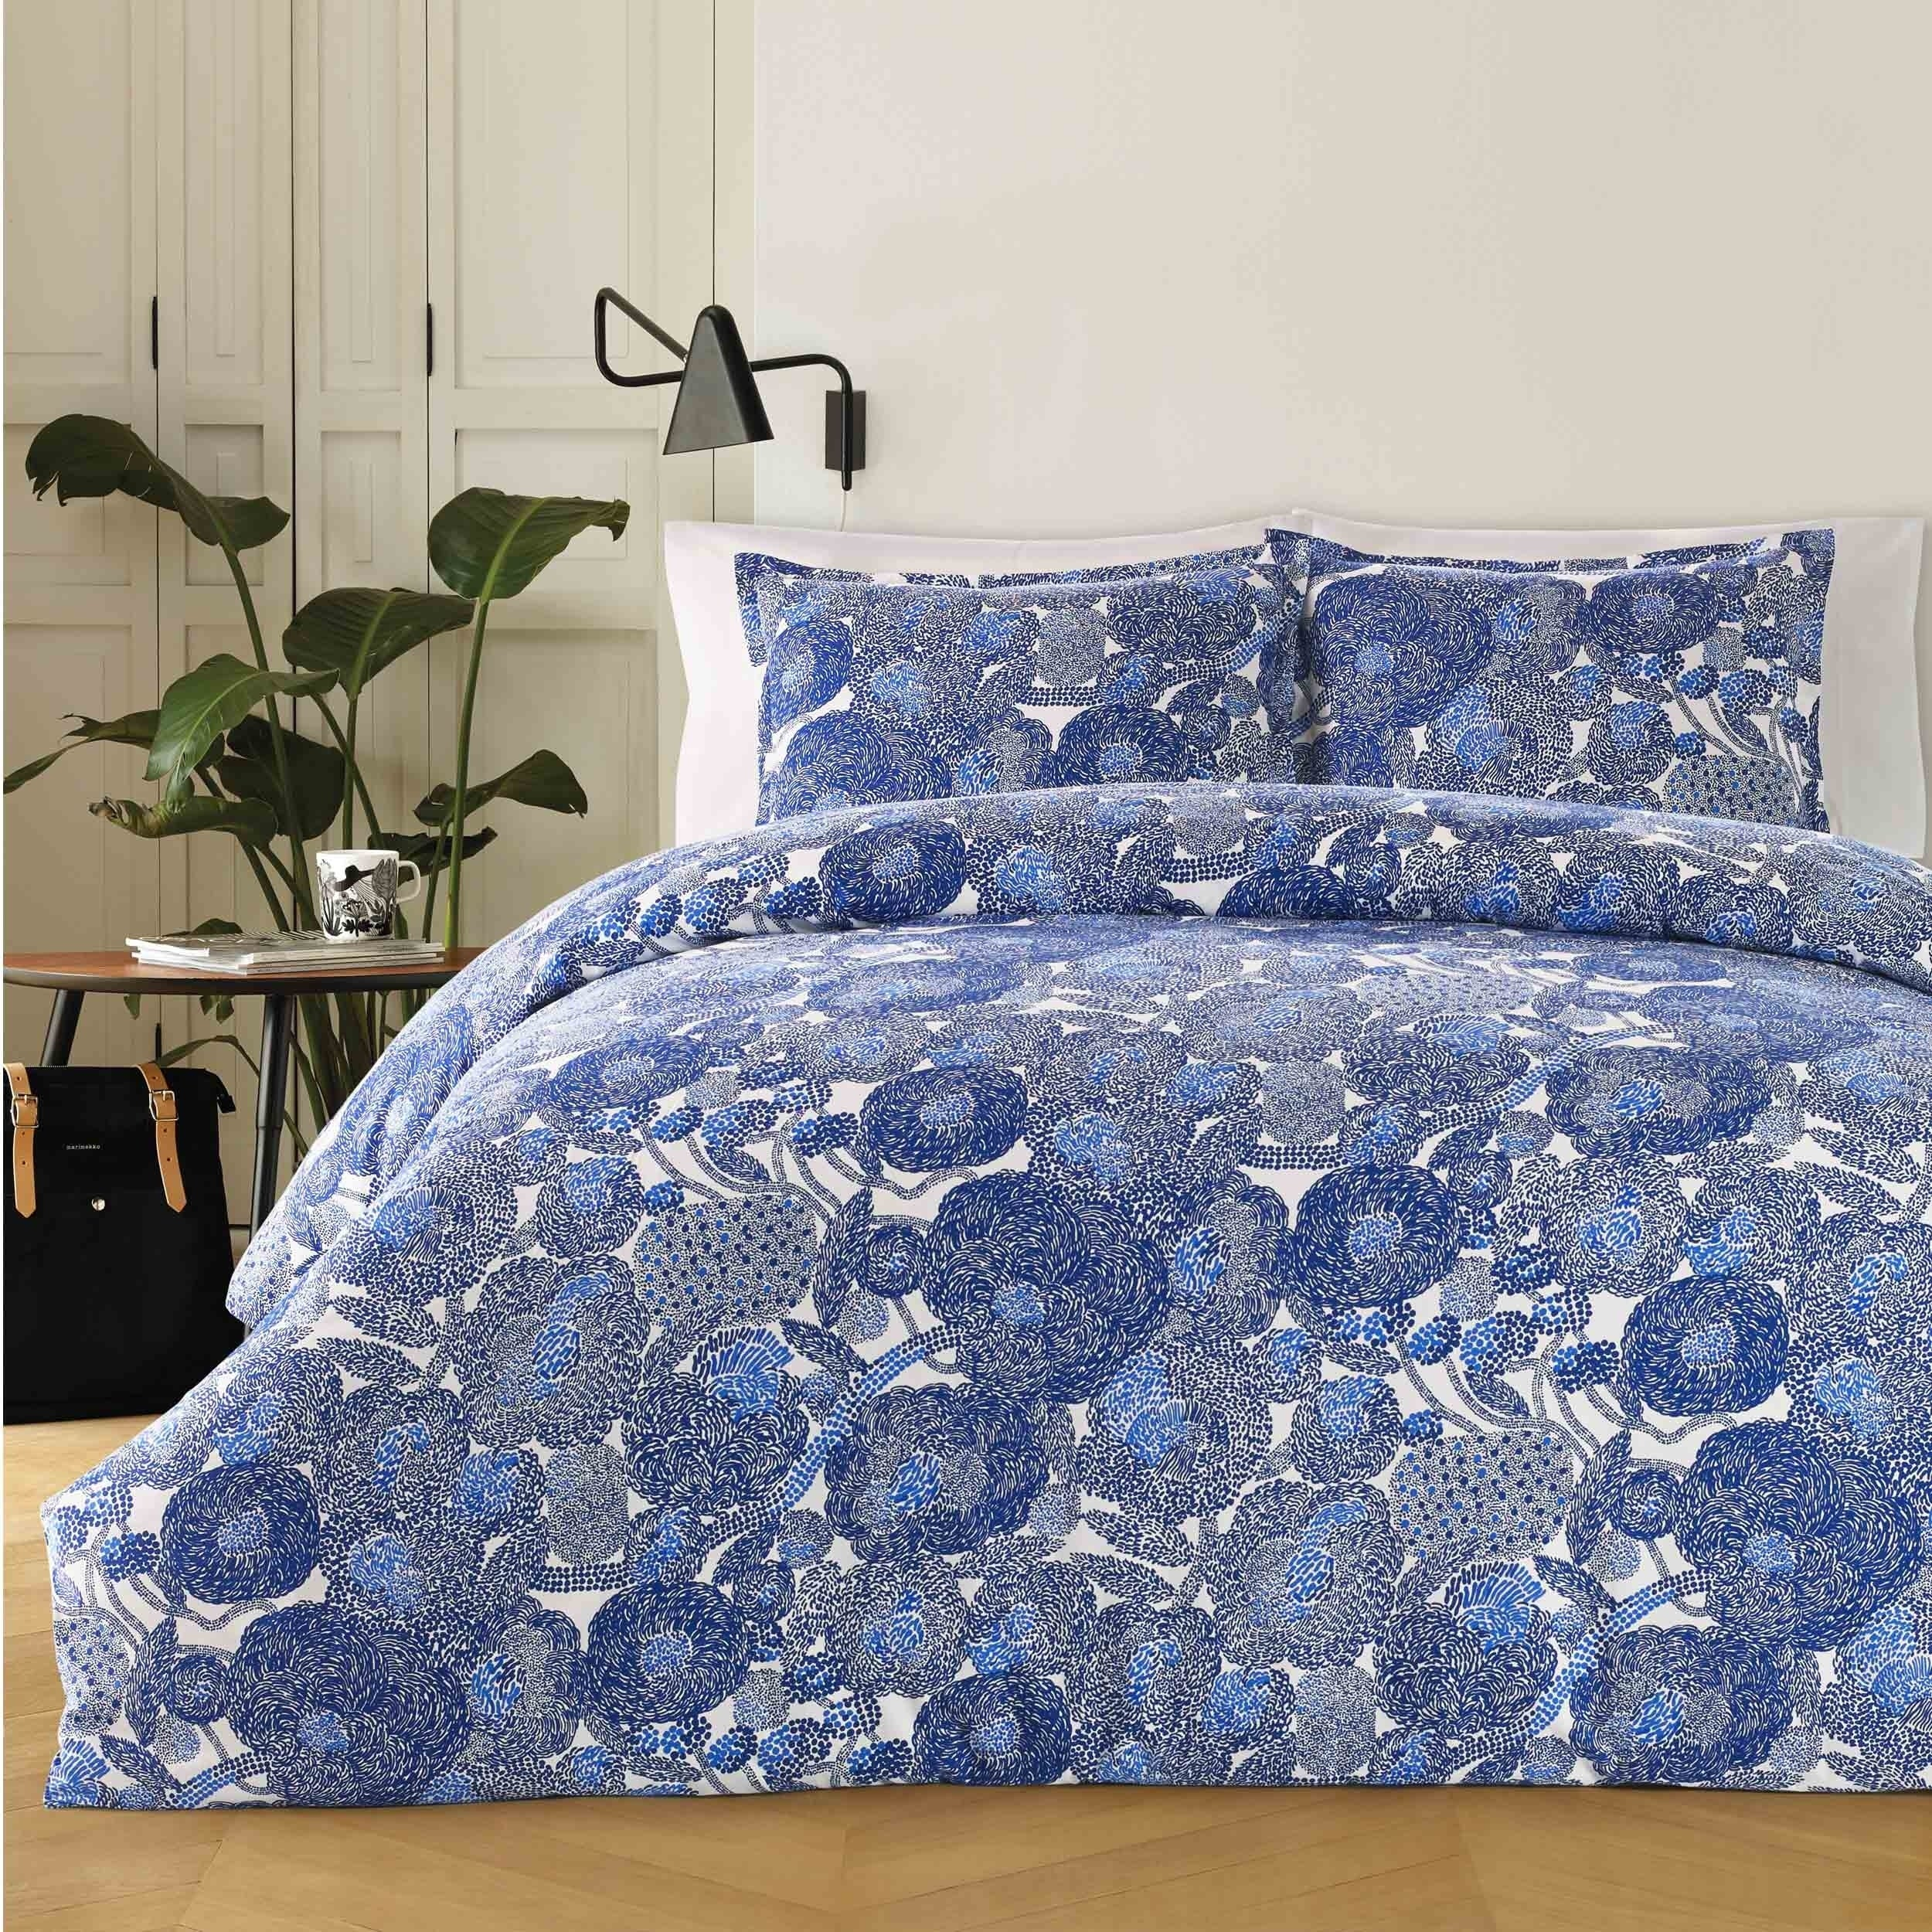 percale sheet cotton bedding bed product ajo shipping marimekko bath set overstock free today